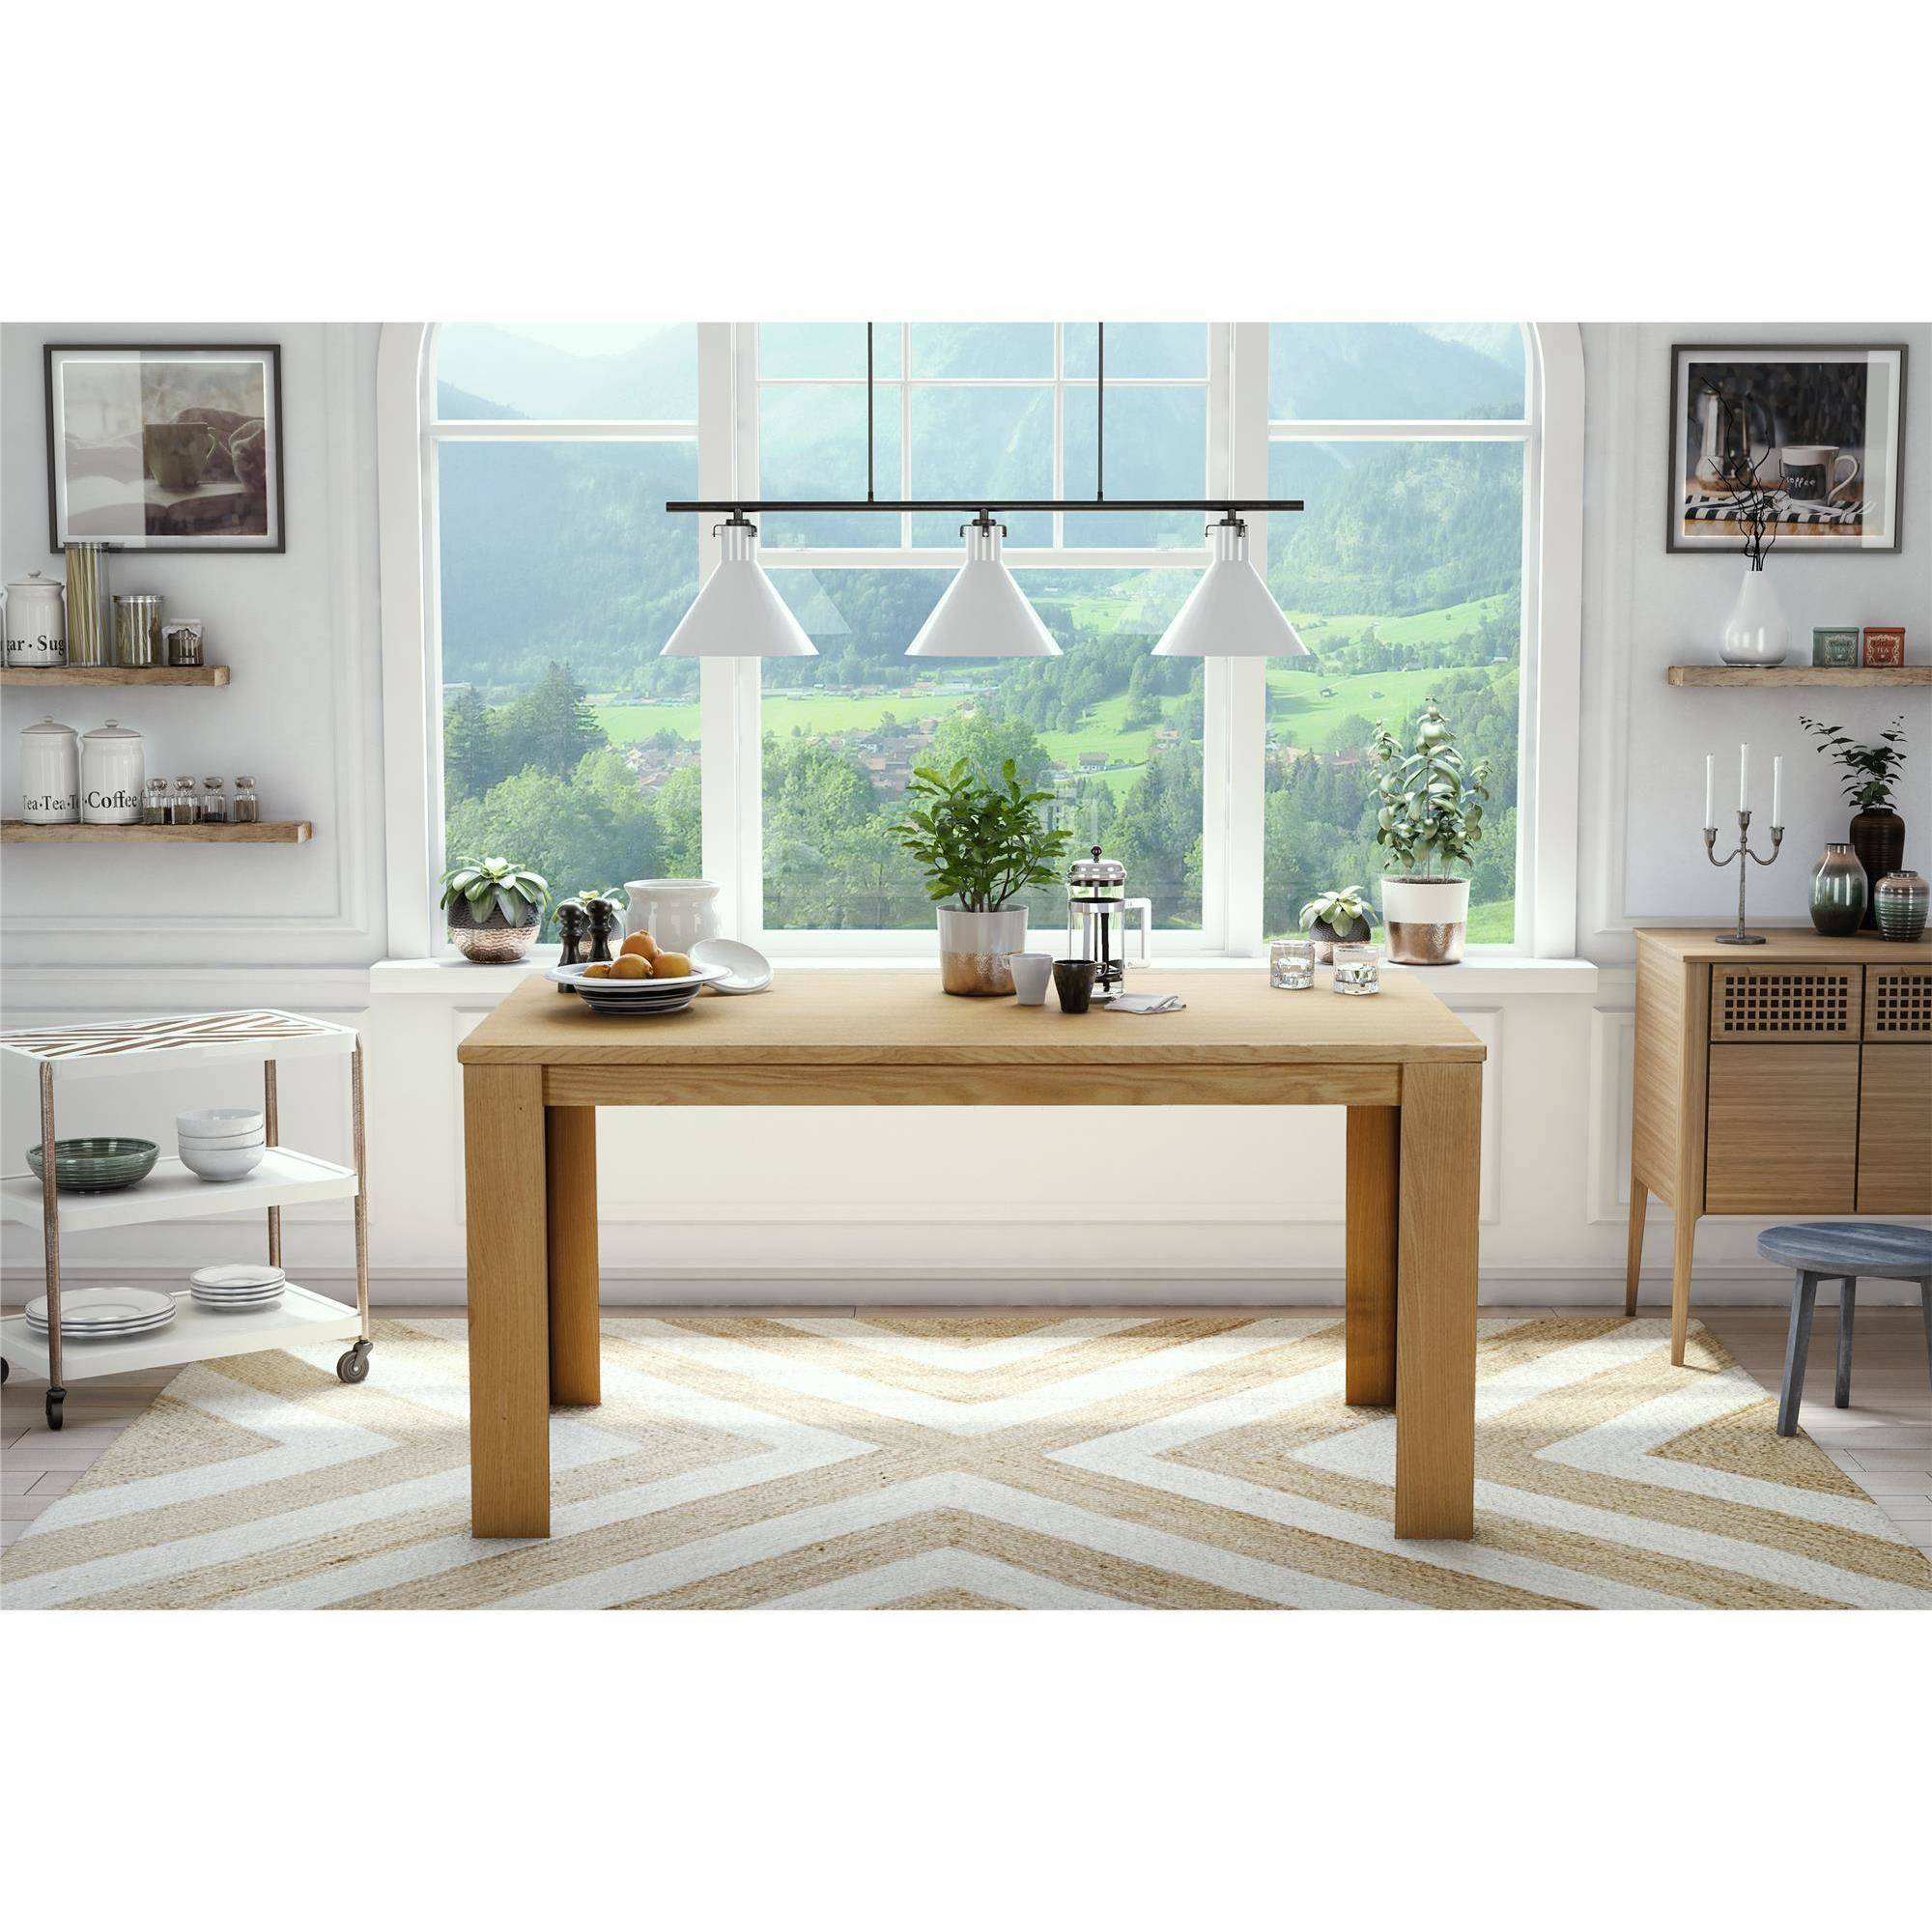 Dorel Living Weston Block Leg Dining Table, Wheat